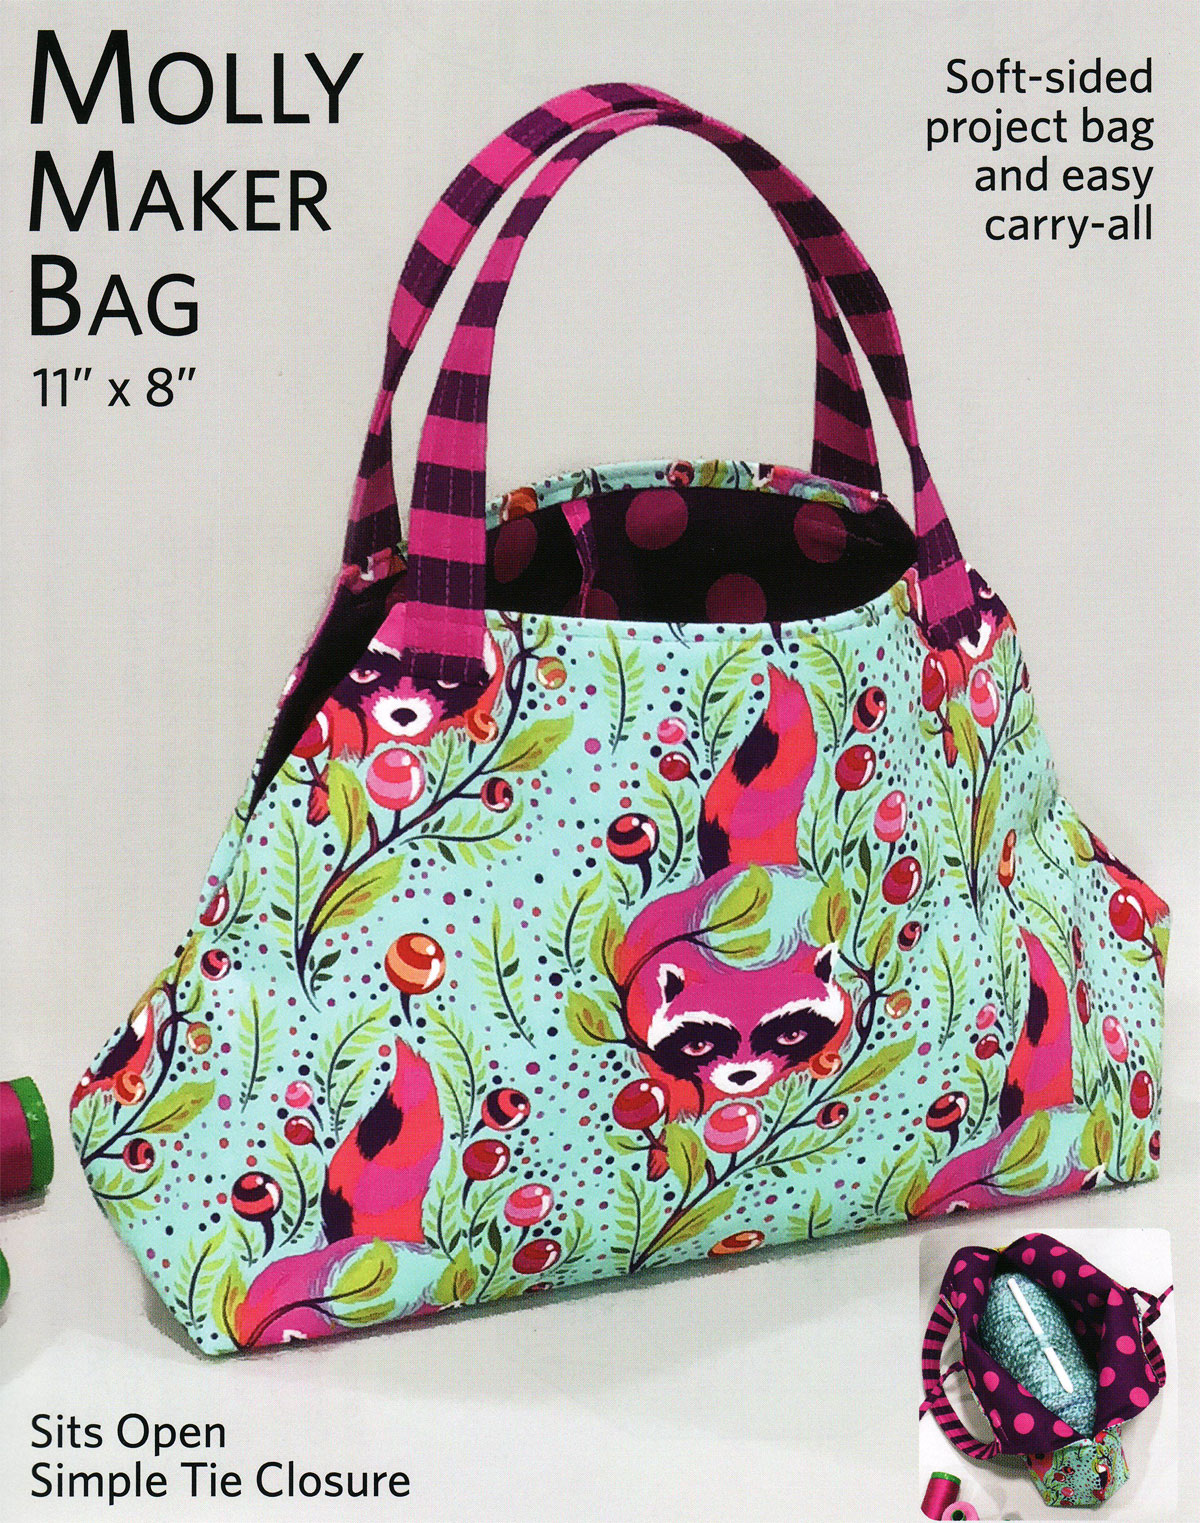 Molly-Maker-Bag-sewing-pattern-Lazy-Girl-Designs-1